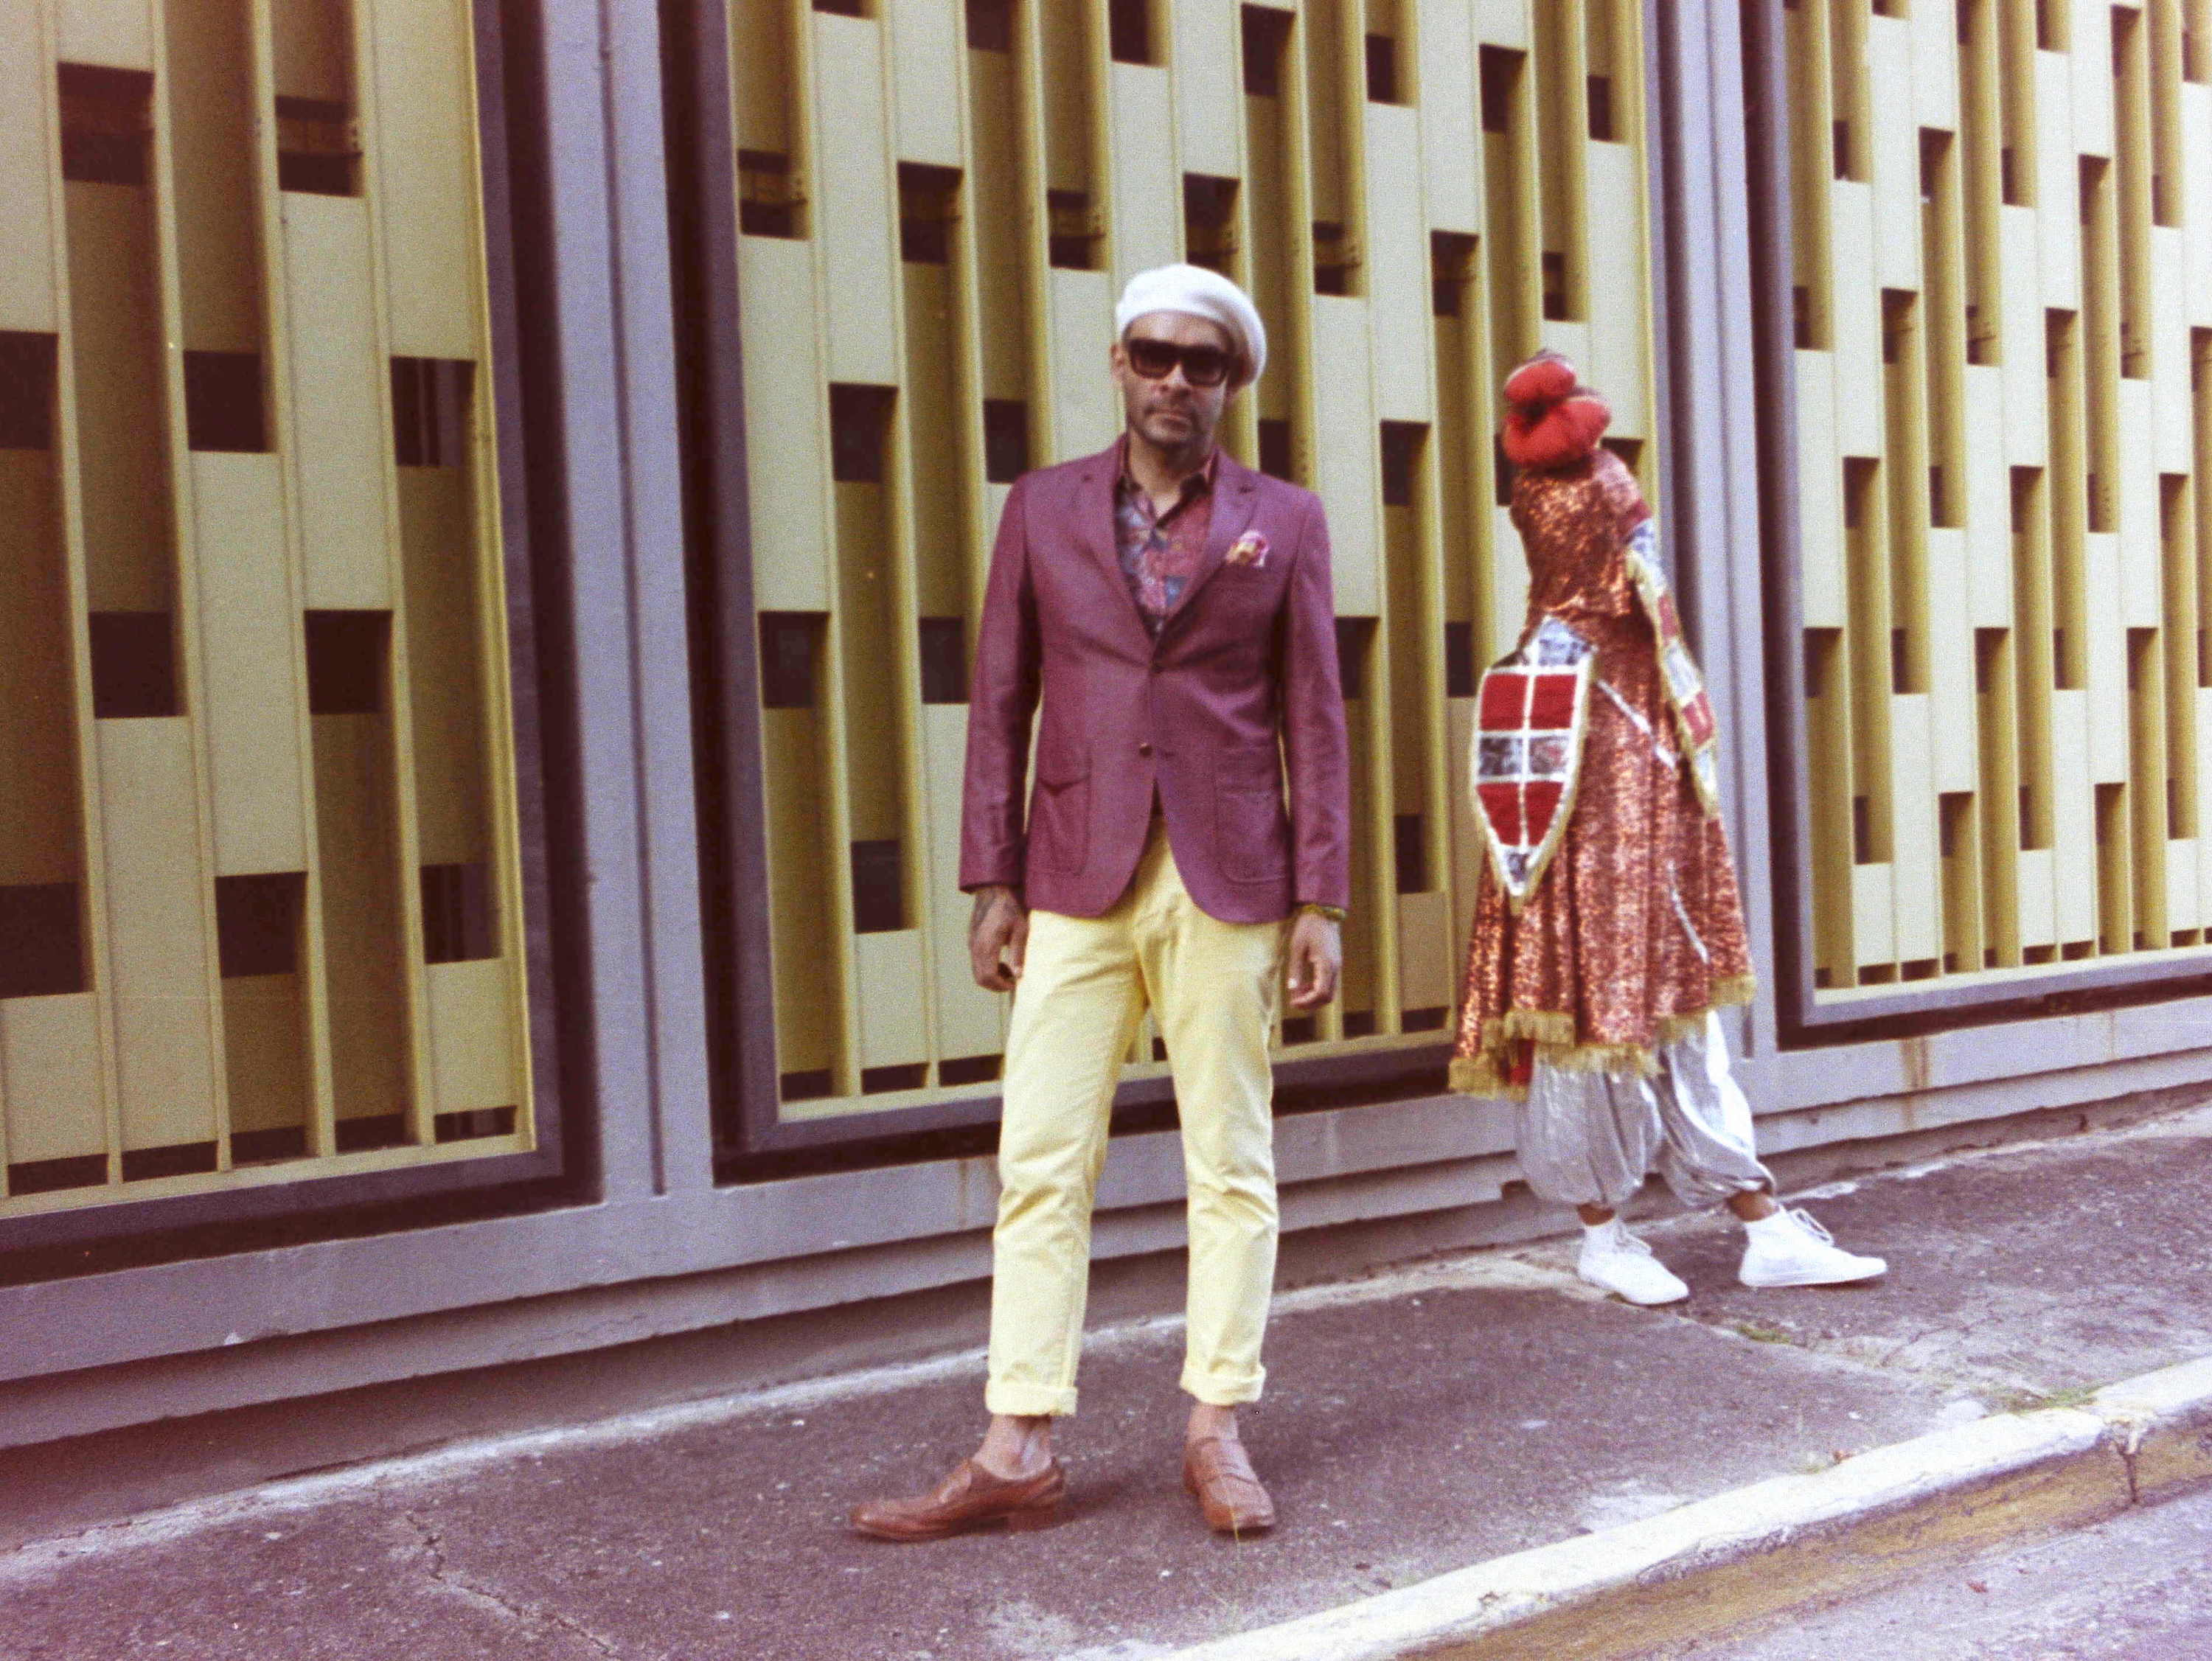 How ÌFÉ's Electro-Jazz Fusions Tap Into the Afro-Caribbean